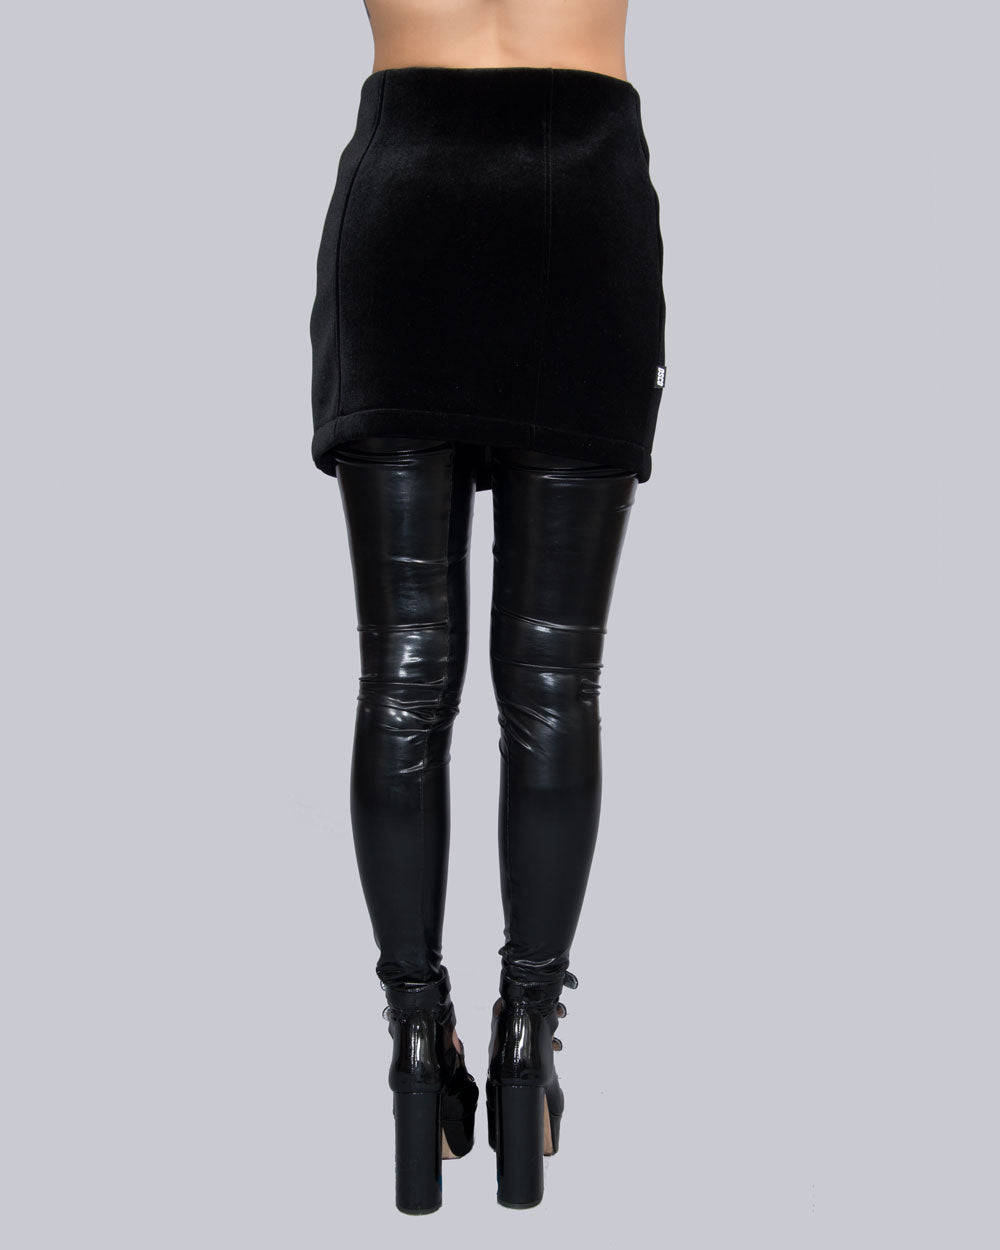 VELOUR ZIPPER SKIRT - Eros Mortis